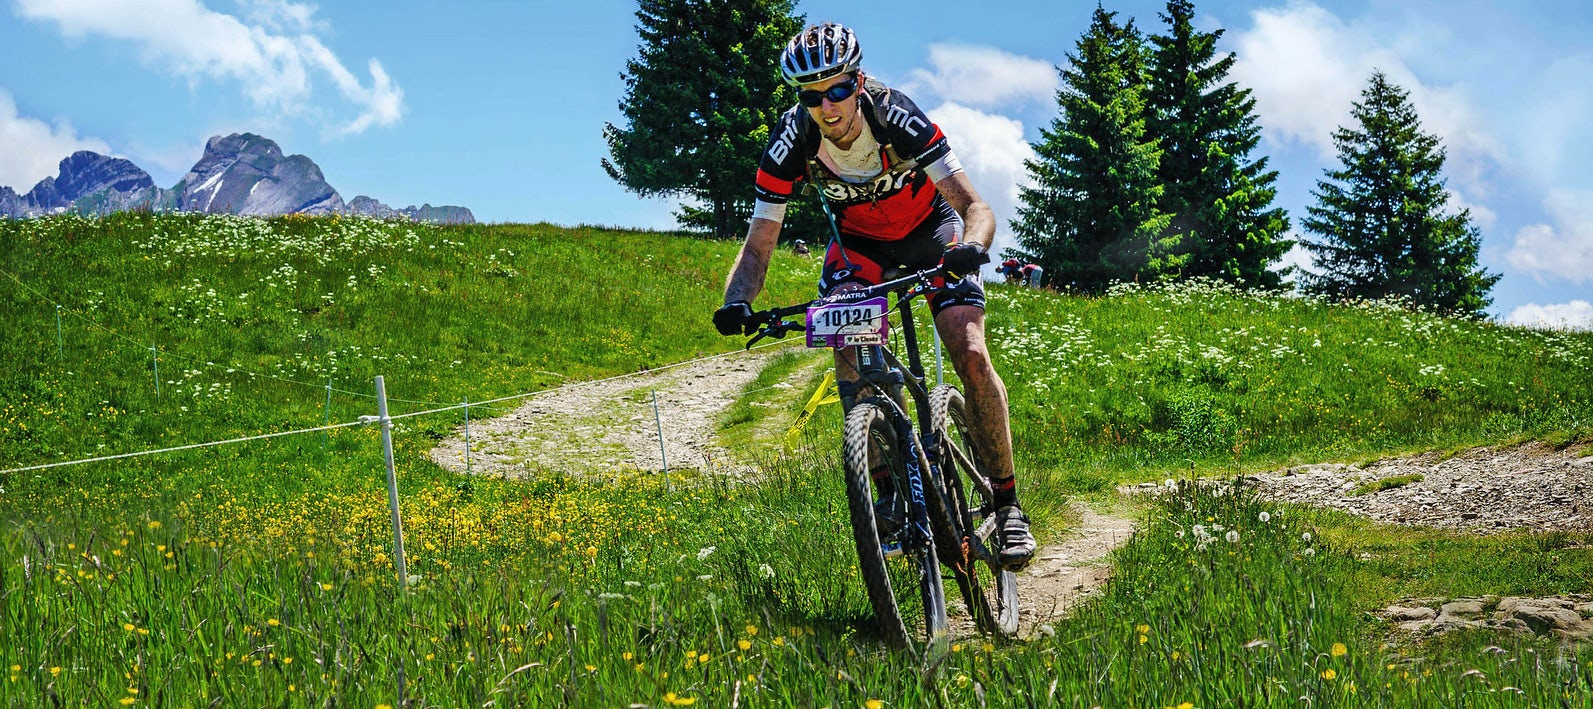 mountain biker riding down a single-track through an Alpine meadow